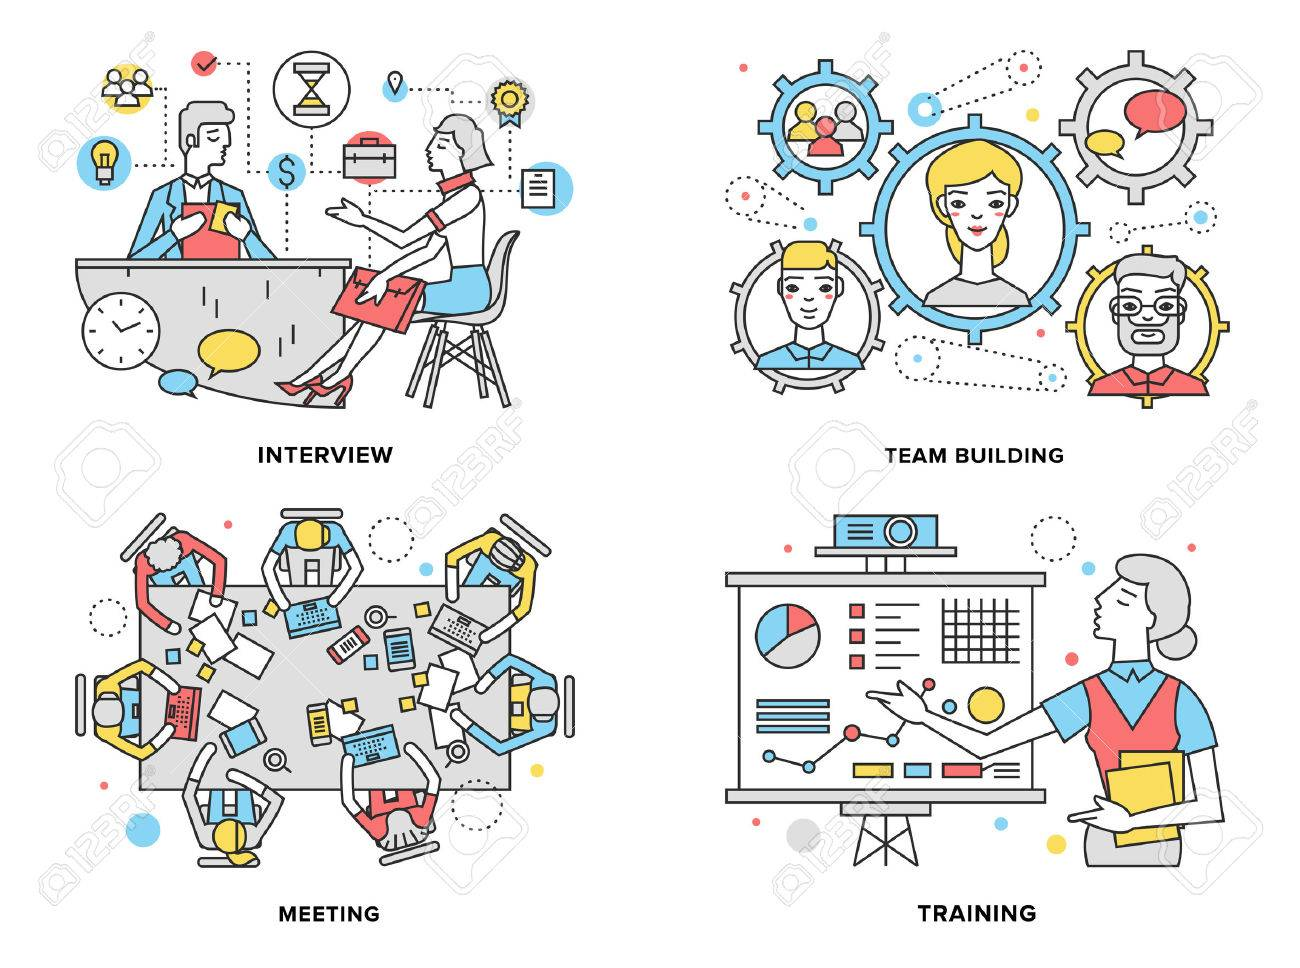 Flat line illustration set of human resources training progress, mentor coaching people for rise potential, business team building process. Stock Vector - 44515140